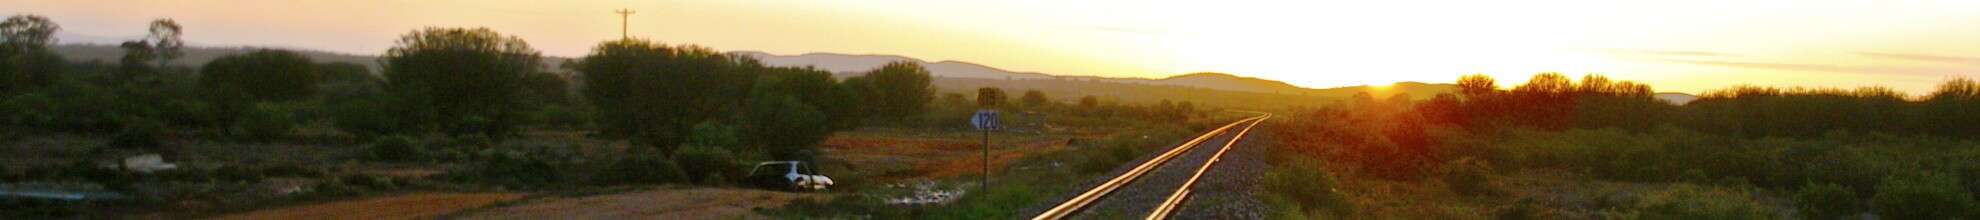 rail track heading towards sunset and distant future destination